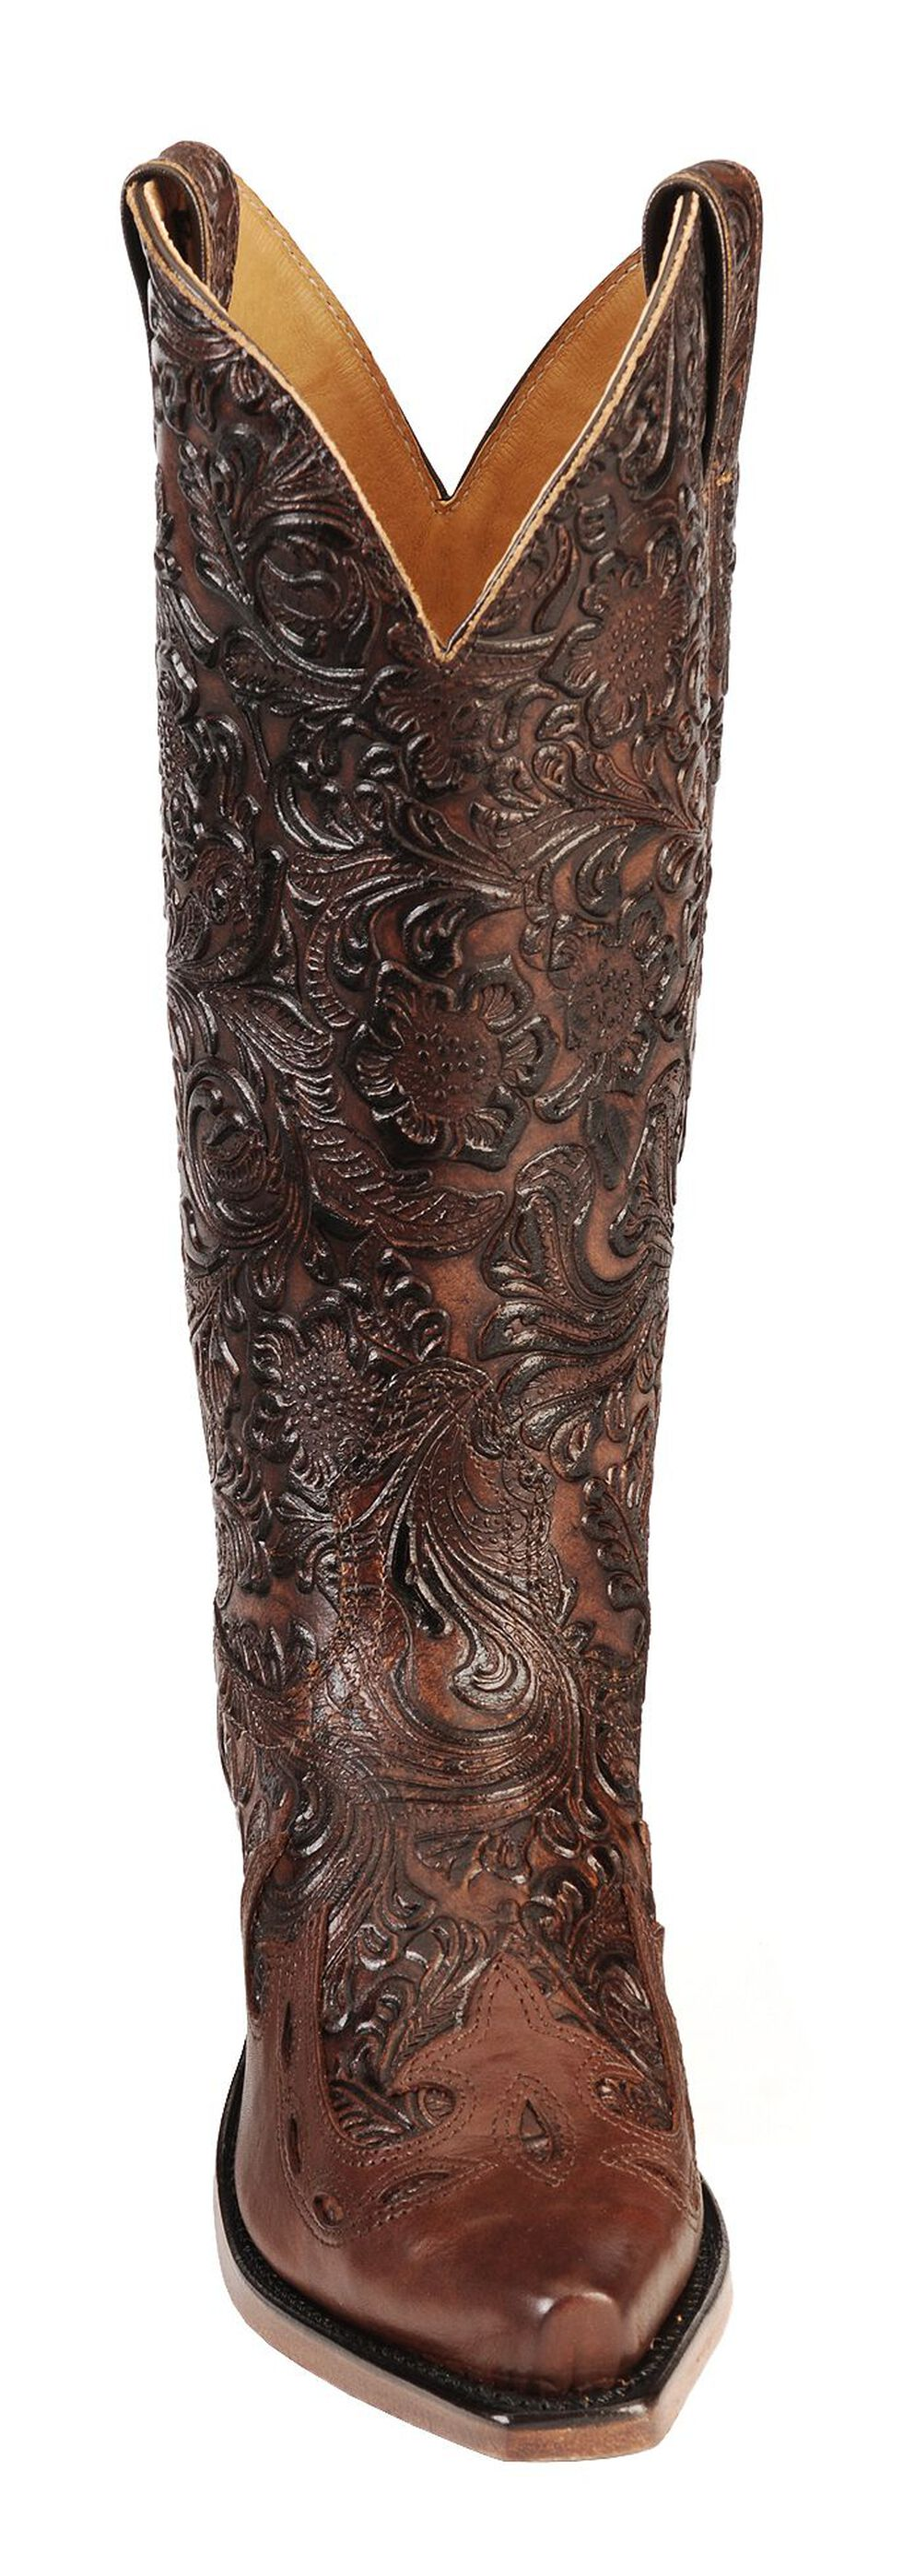 Boulet Hand Tooled Calf with Wingtip Cowgirl Boots - Snip Toe, Tan, hi-res